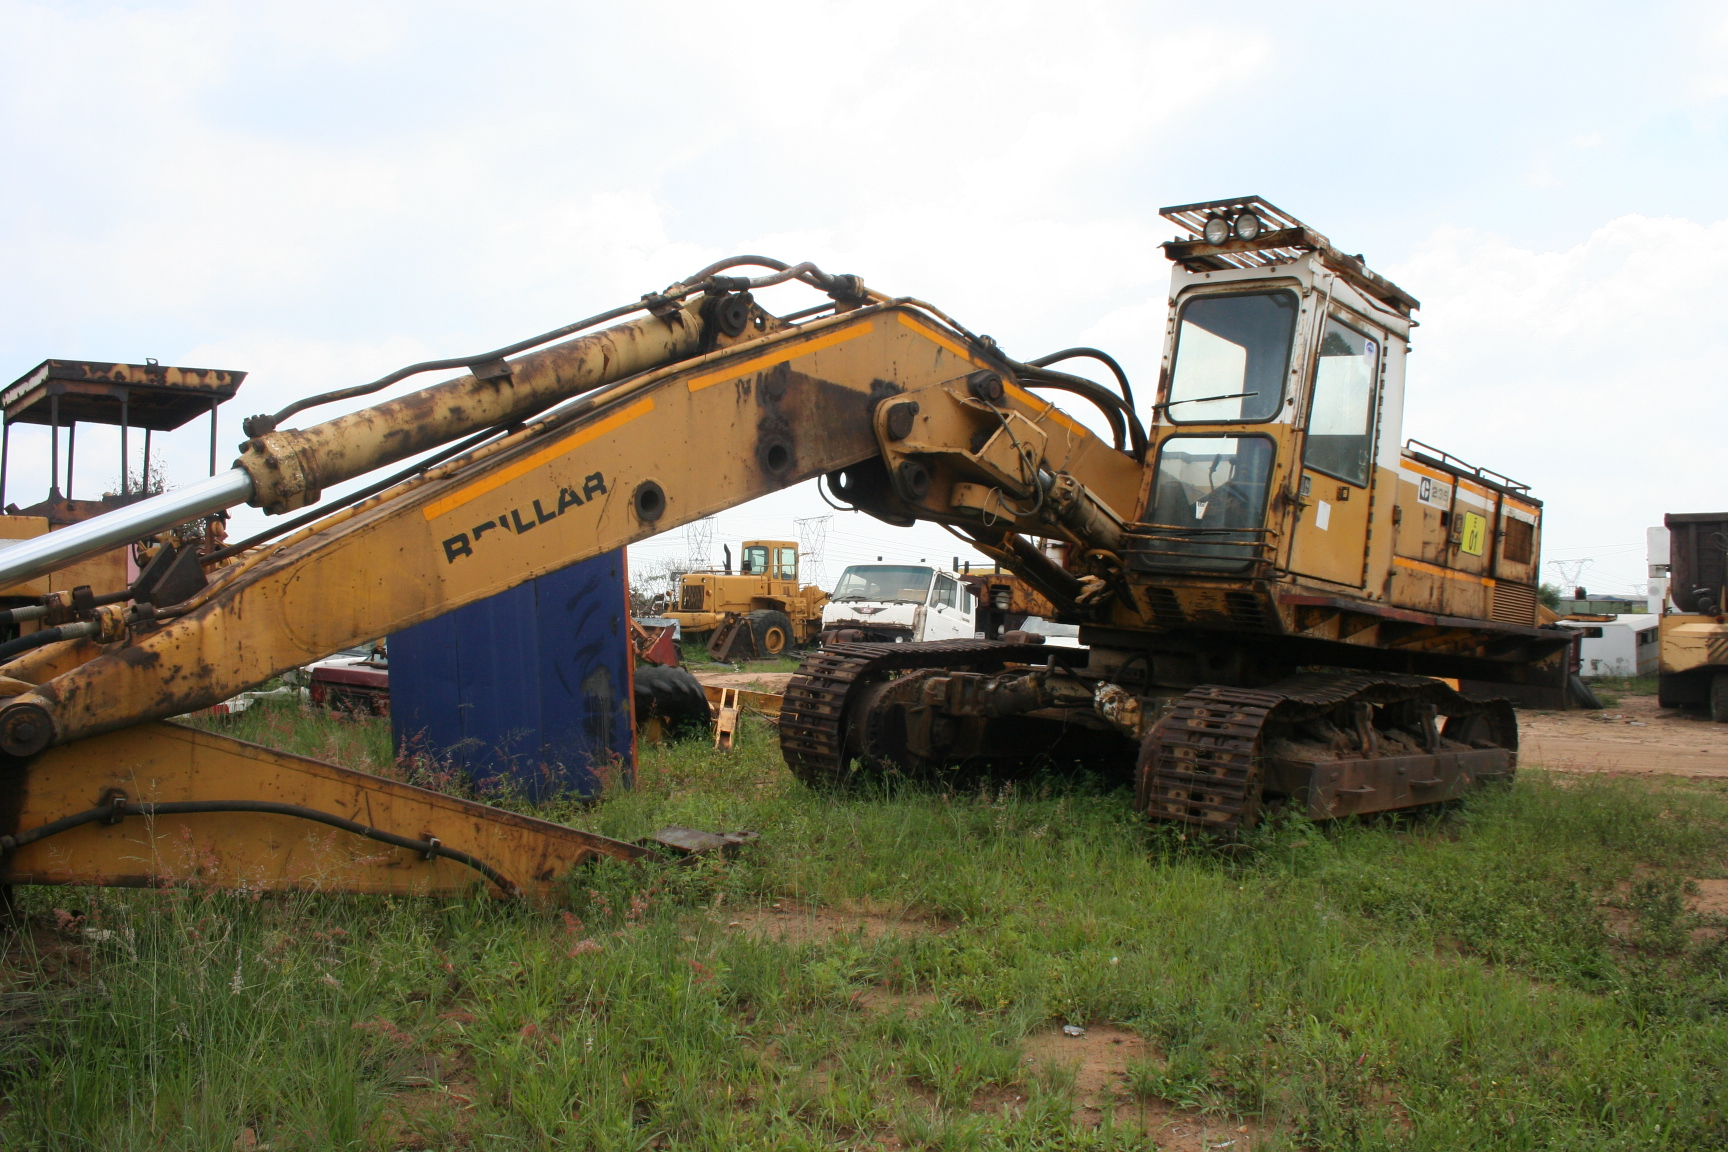 CAT 235 Excavator (Stripping For Spares)